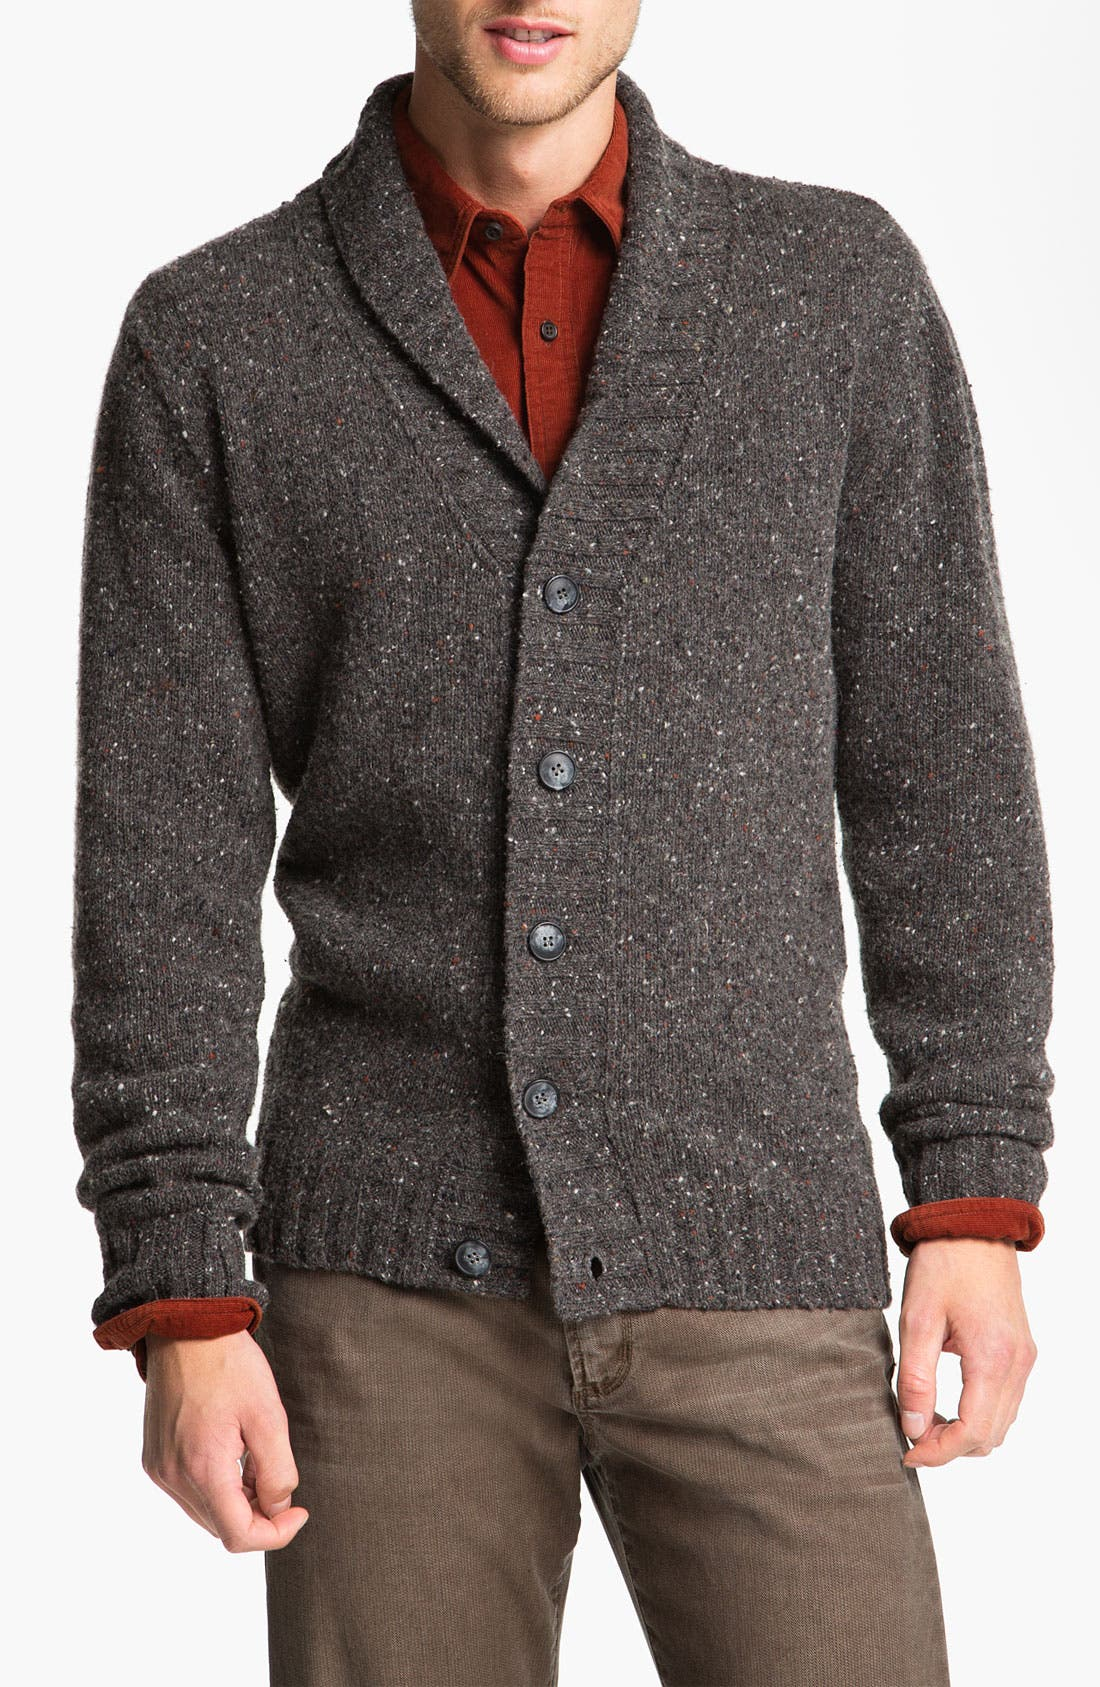 Main Image - Fiesole Shawl Collar Wool Blend Cardigan